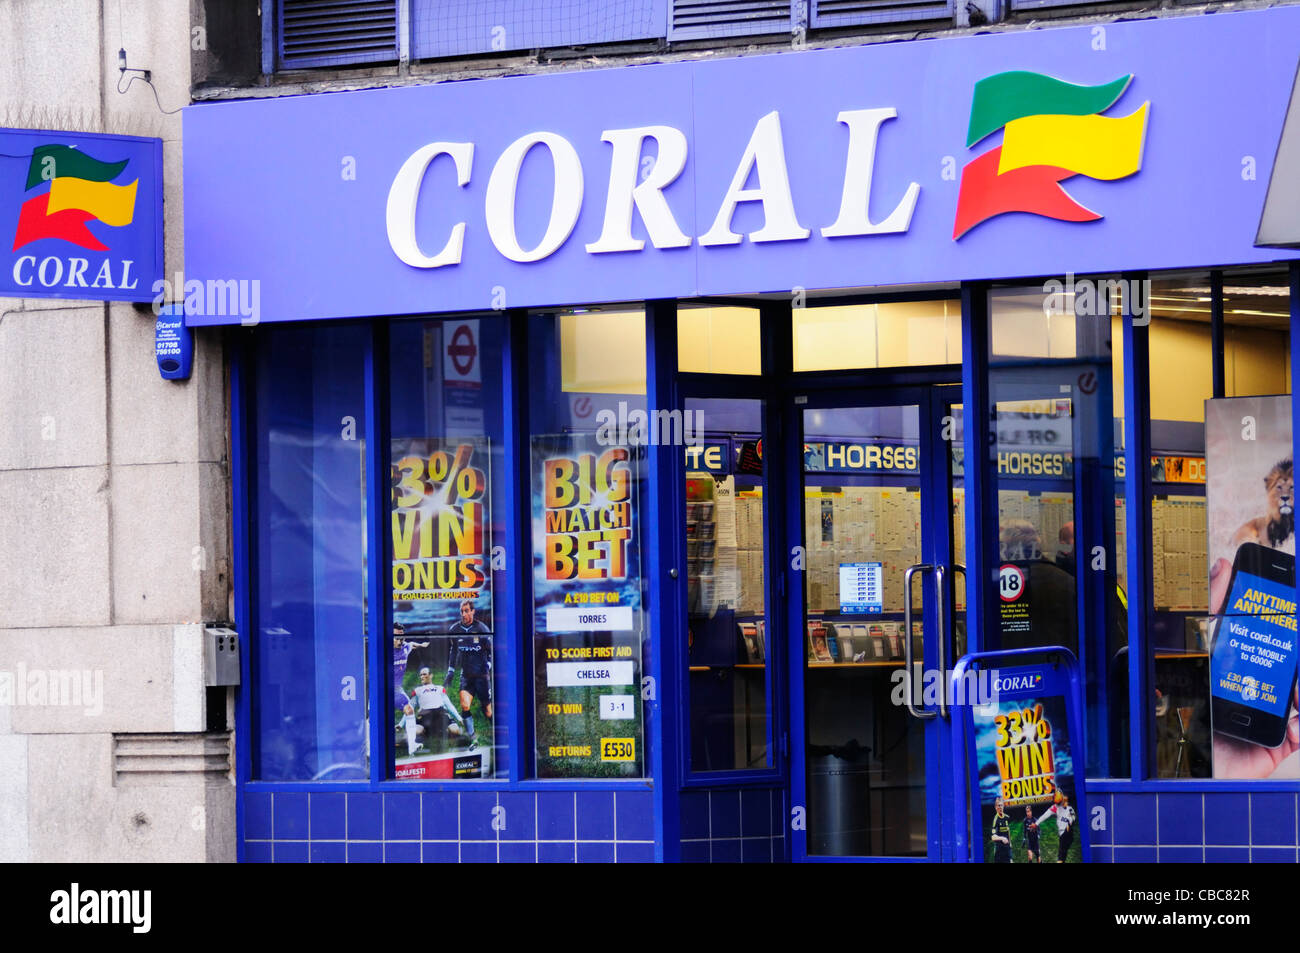 Coral Betting Shop, London, England, Uk - Stock Image